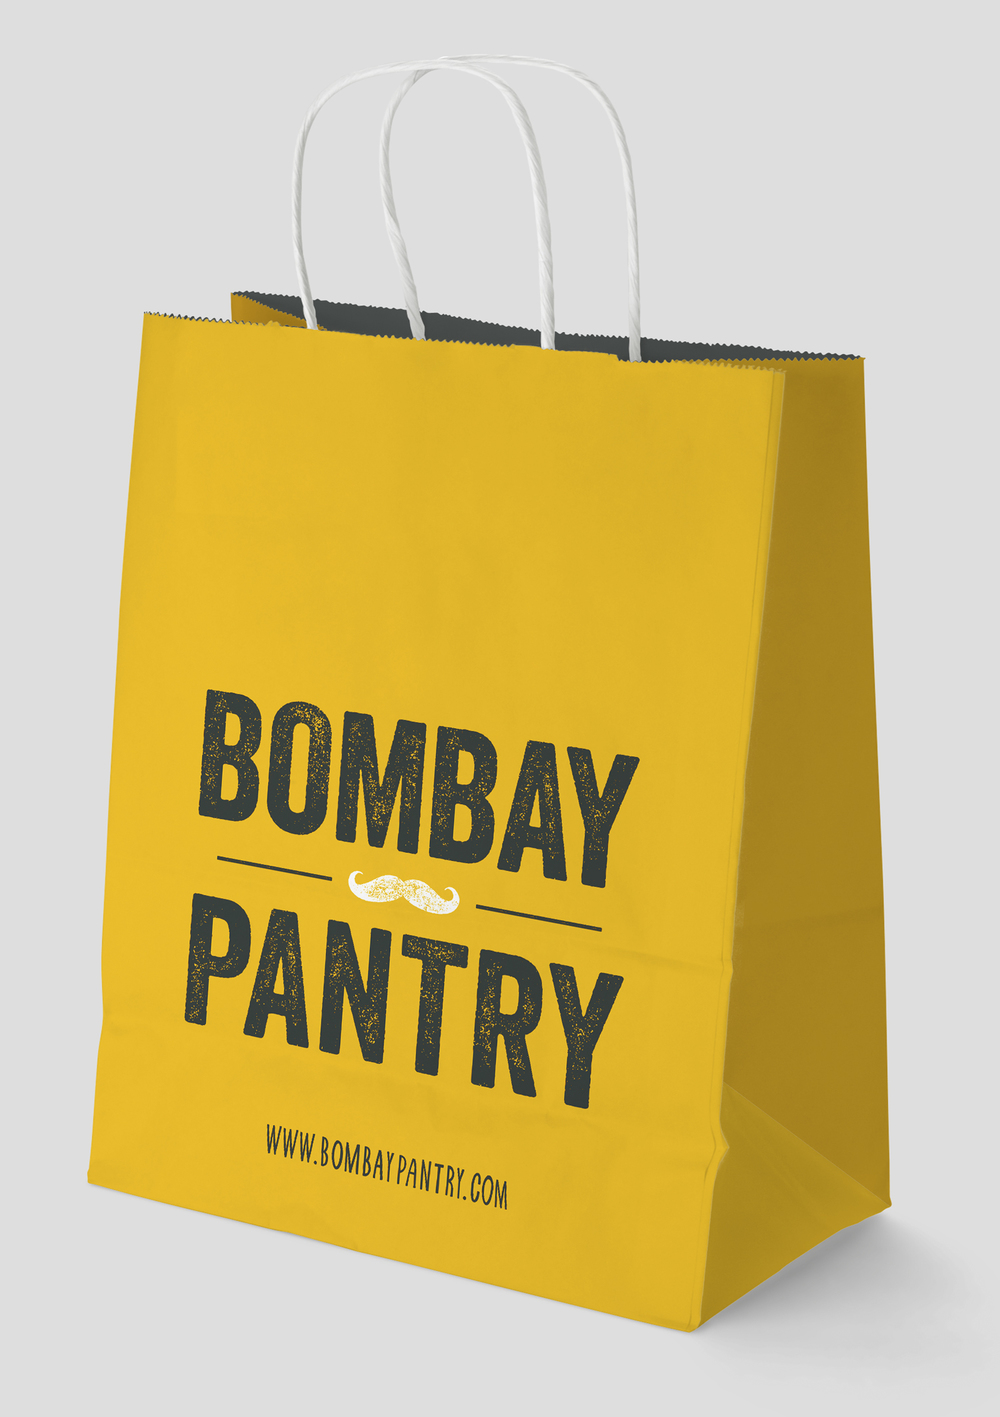 Bombay_Pantry_Stephen_Kiernan_bag.jpg